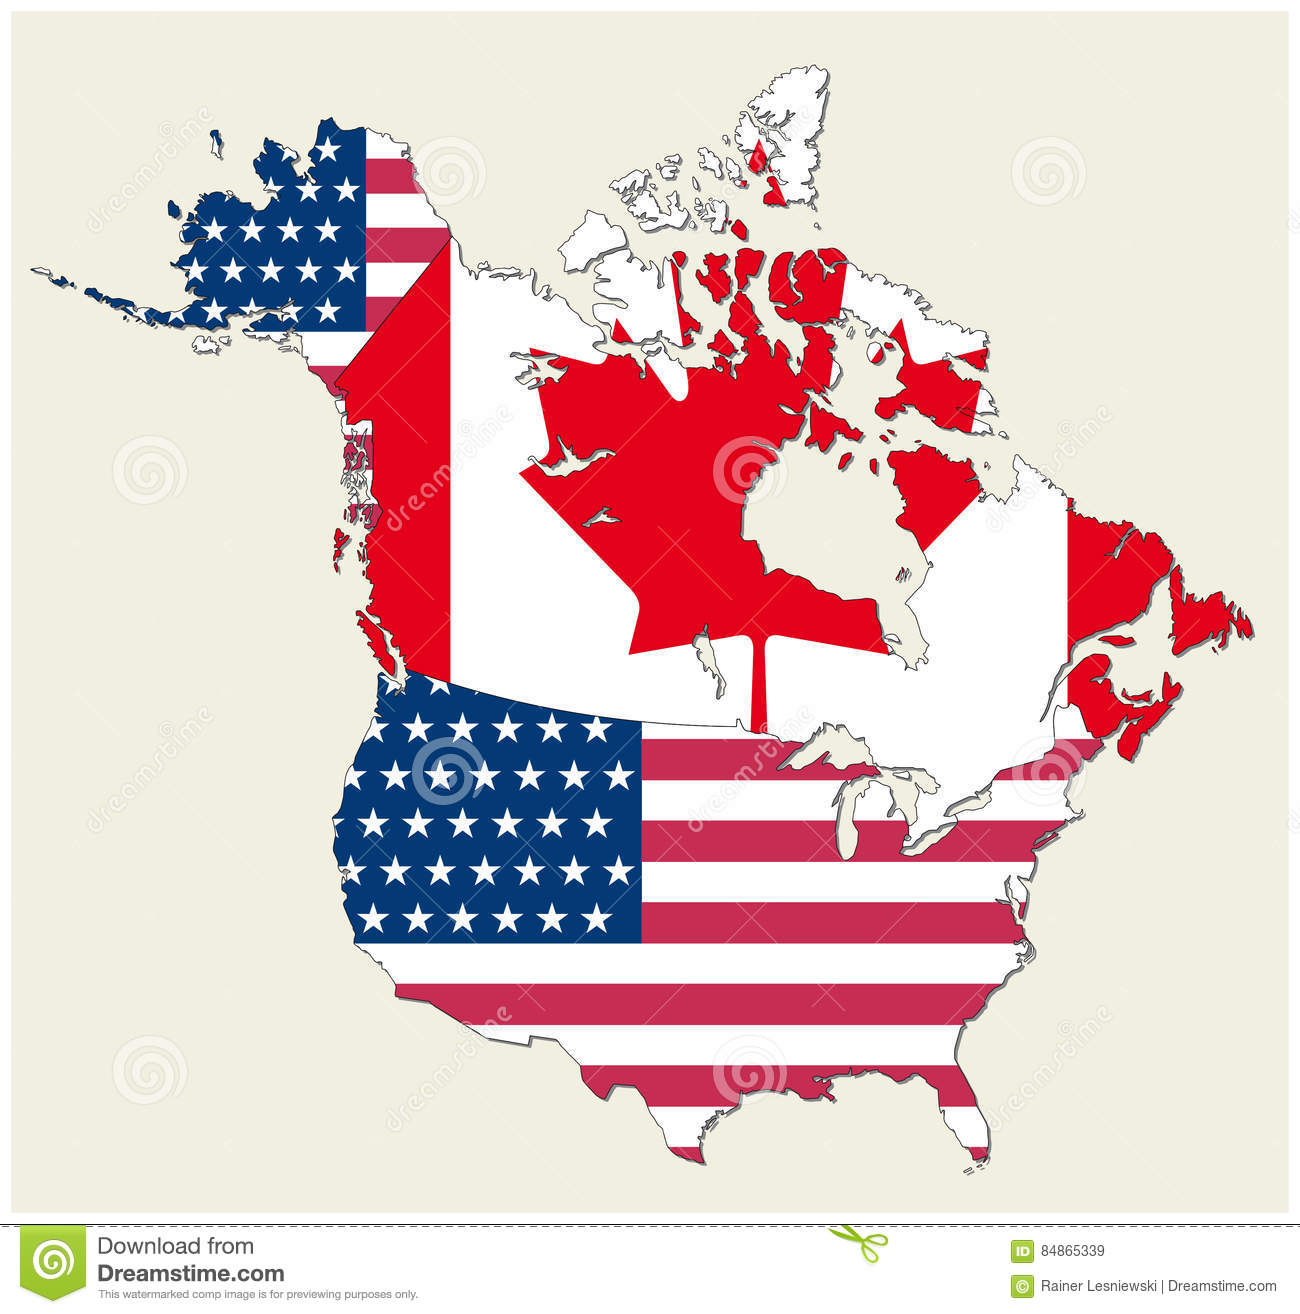 It is the national flag of the united states of america which consists of thirteen horizontal stripes that are spread over the entire flag. Usa Canada Flag Map Stock Illustrations 2 154 Usa Canada Flag Map Stock Illustrations Vectors Clipart Dreamstime